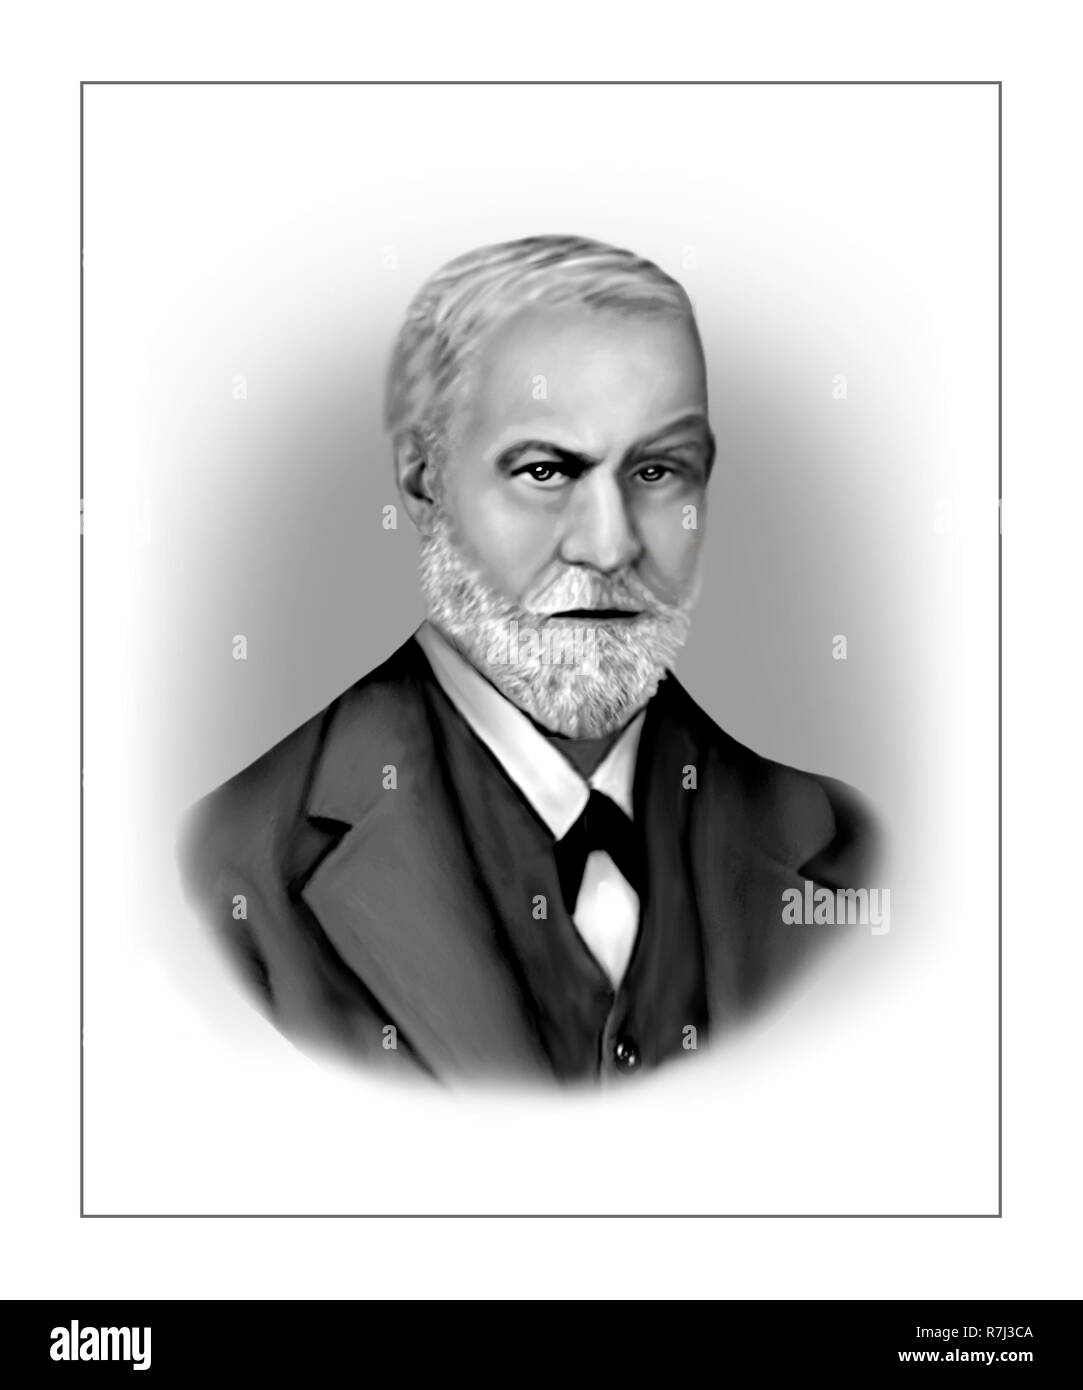 Sigmund Schlomo Freud  1856 - 1939  Austrian Founder of Psychoanalysis Neurologist - Stock Image